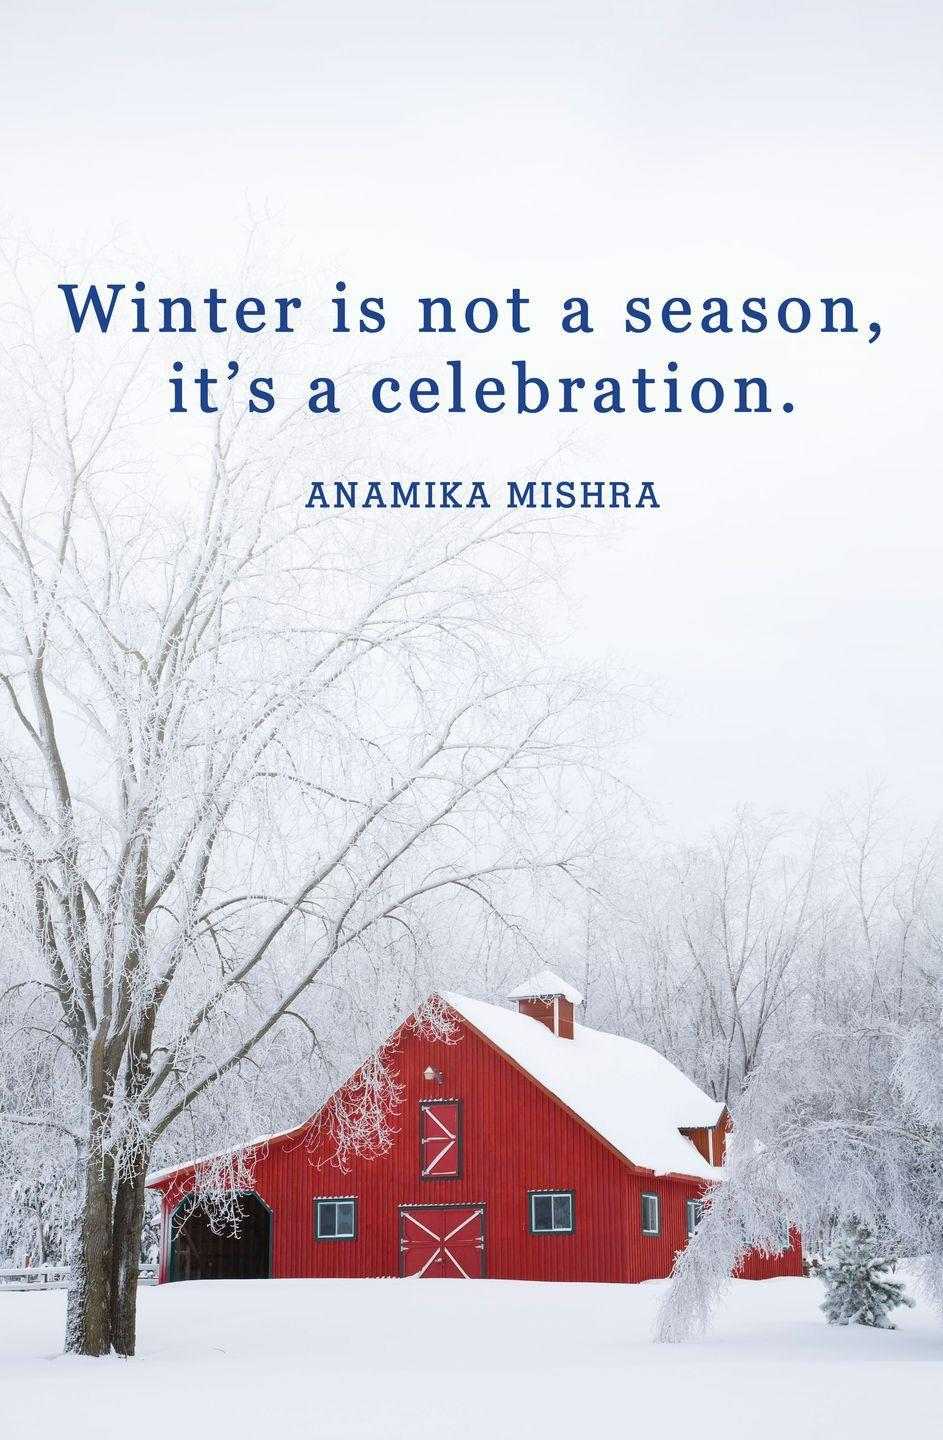 "<p>""Winter is not a season, it's a celebration.""</p>"